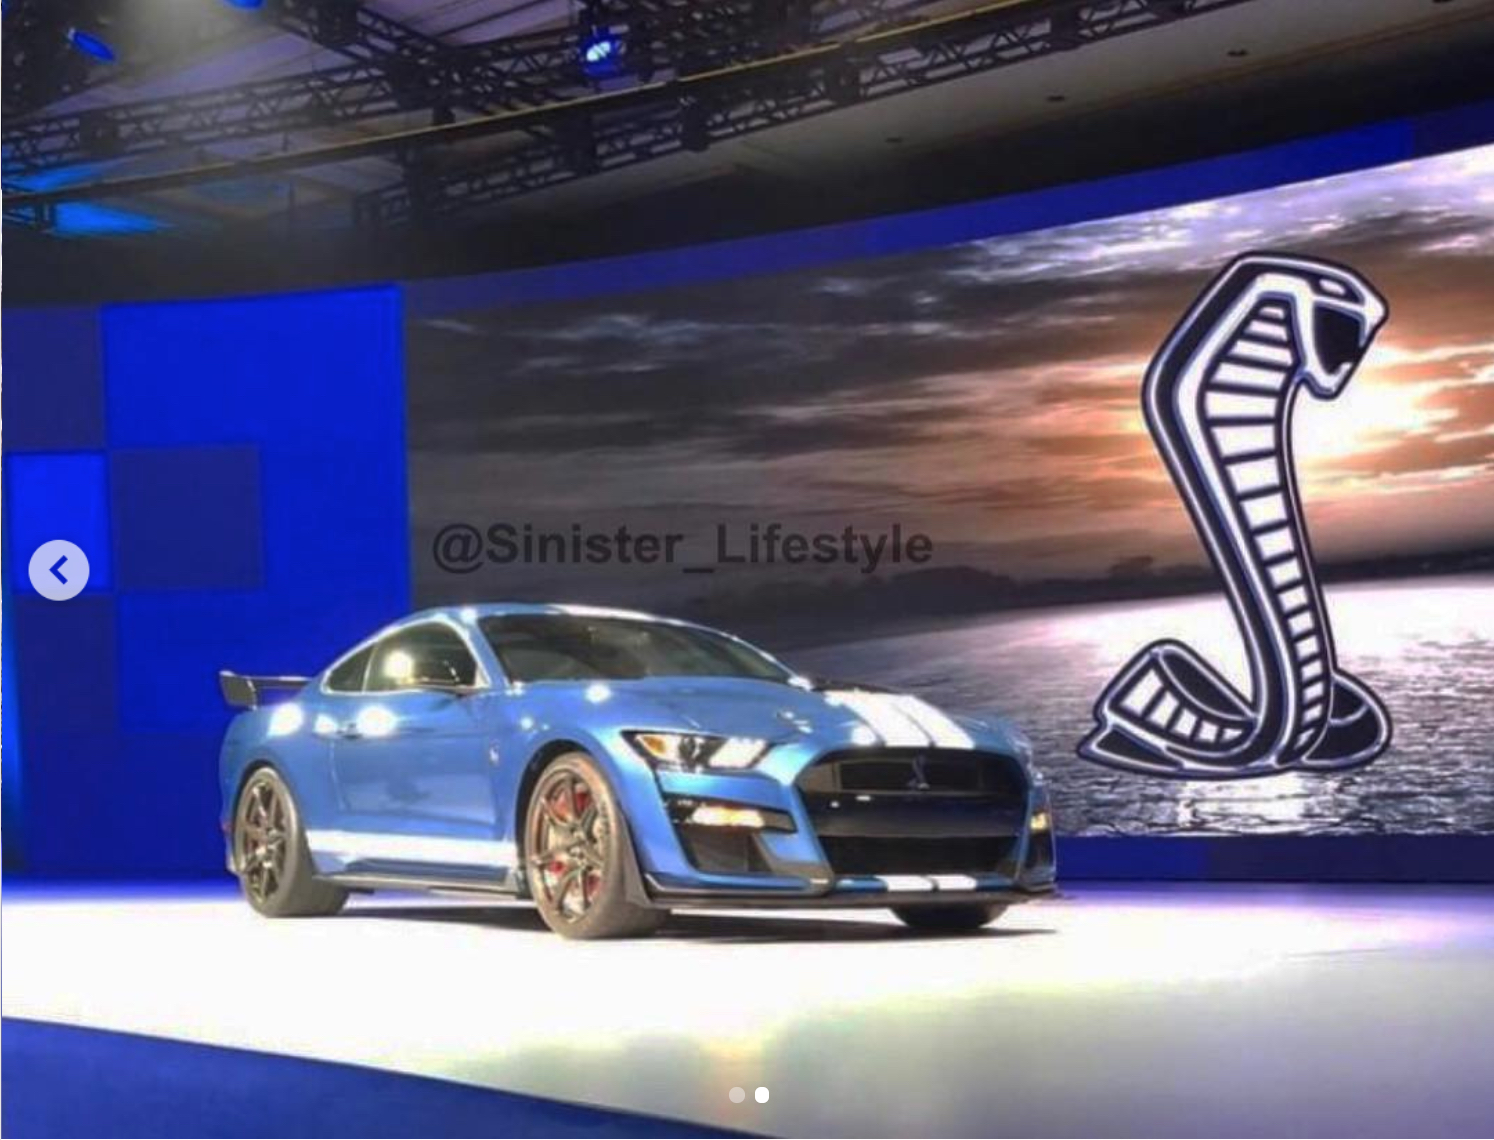 2020 ford mustang shelby gt500 revealed in social media post top speed